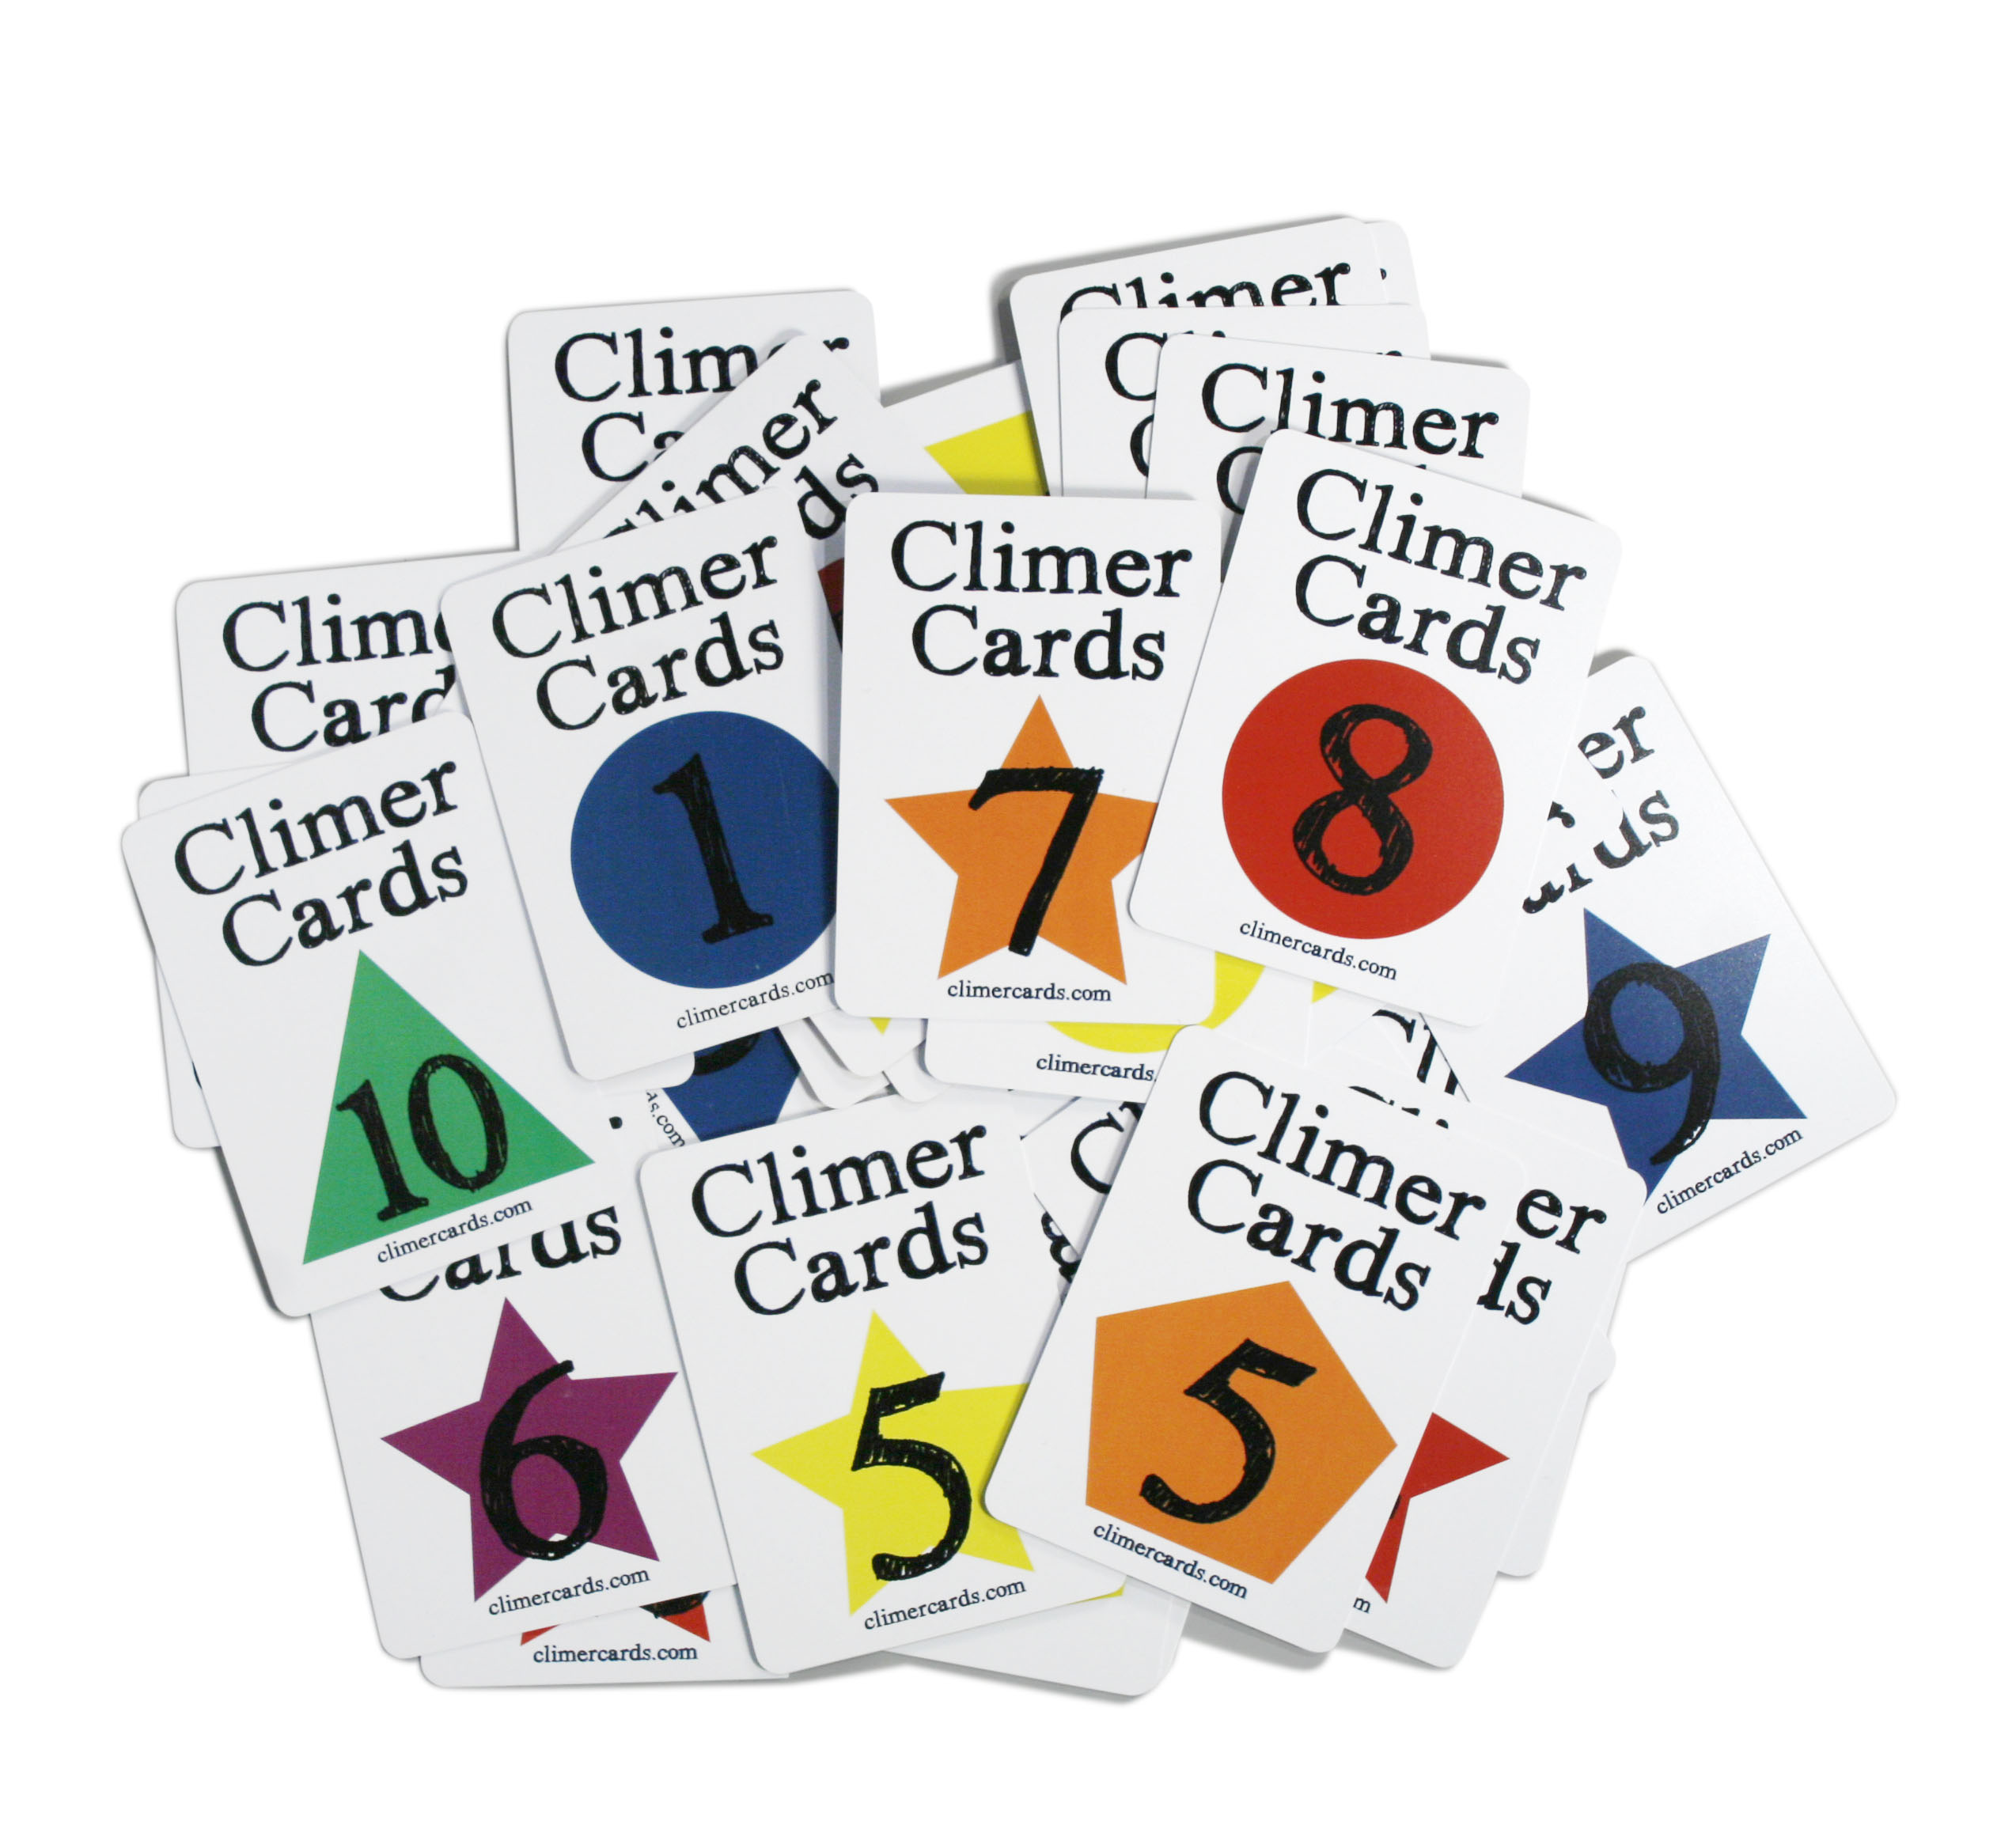 Climer Cards piled up number side